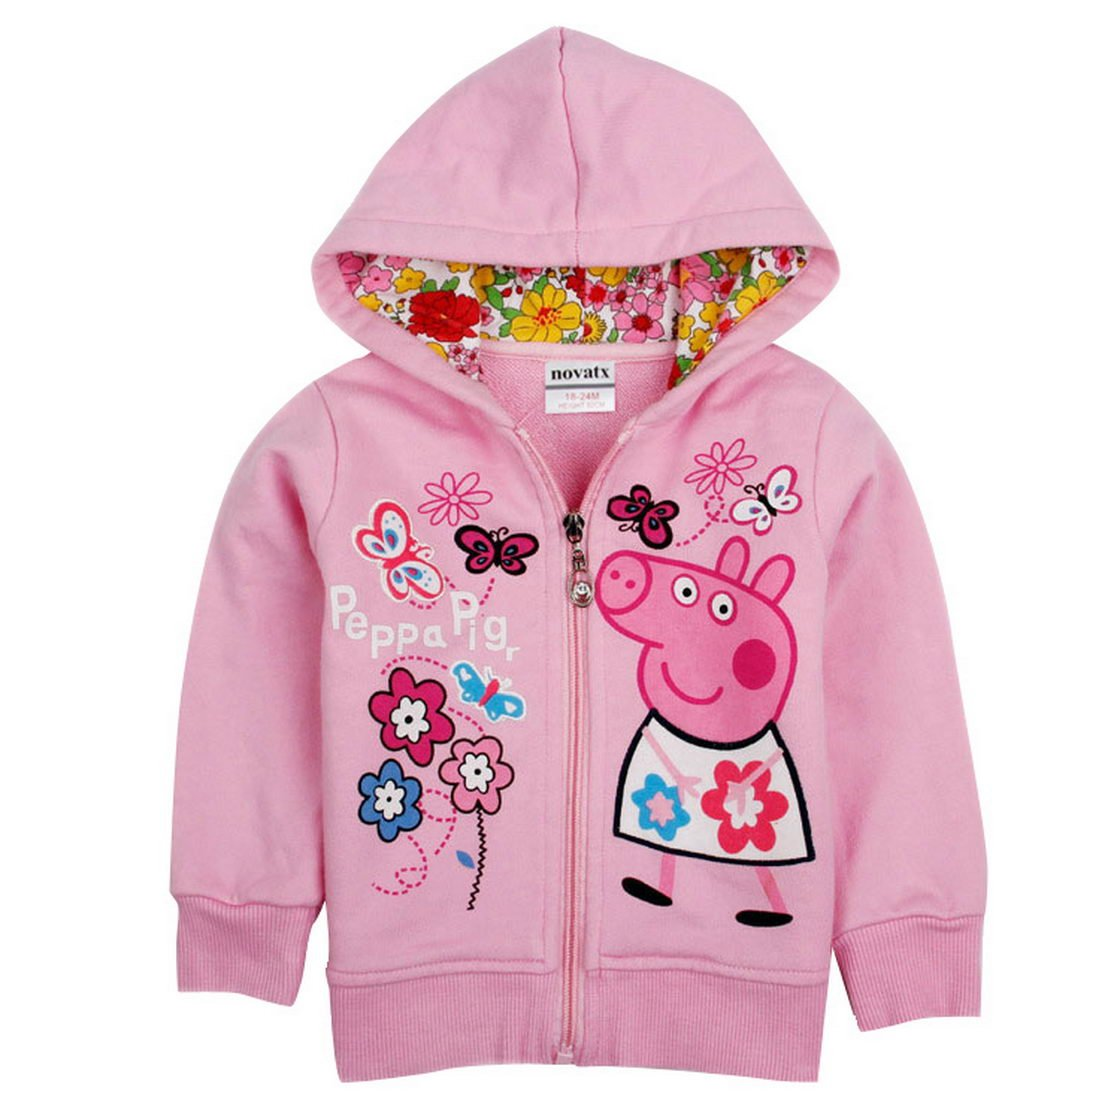 Peppa Pig Little Girls Long Sleeve Cartoon Hooded Cotton Jacket 1-6Y Tiful